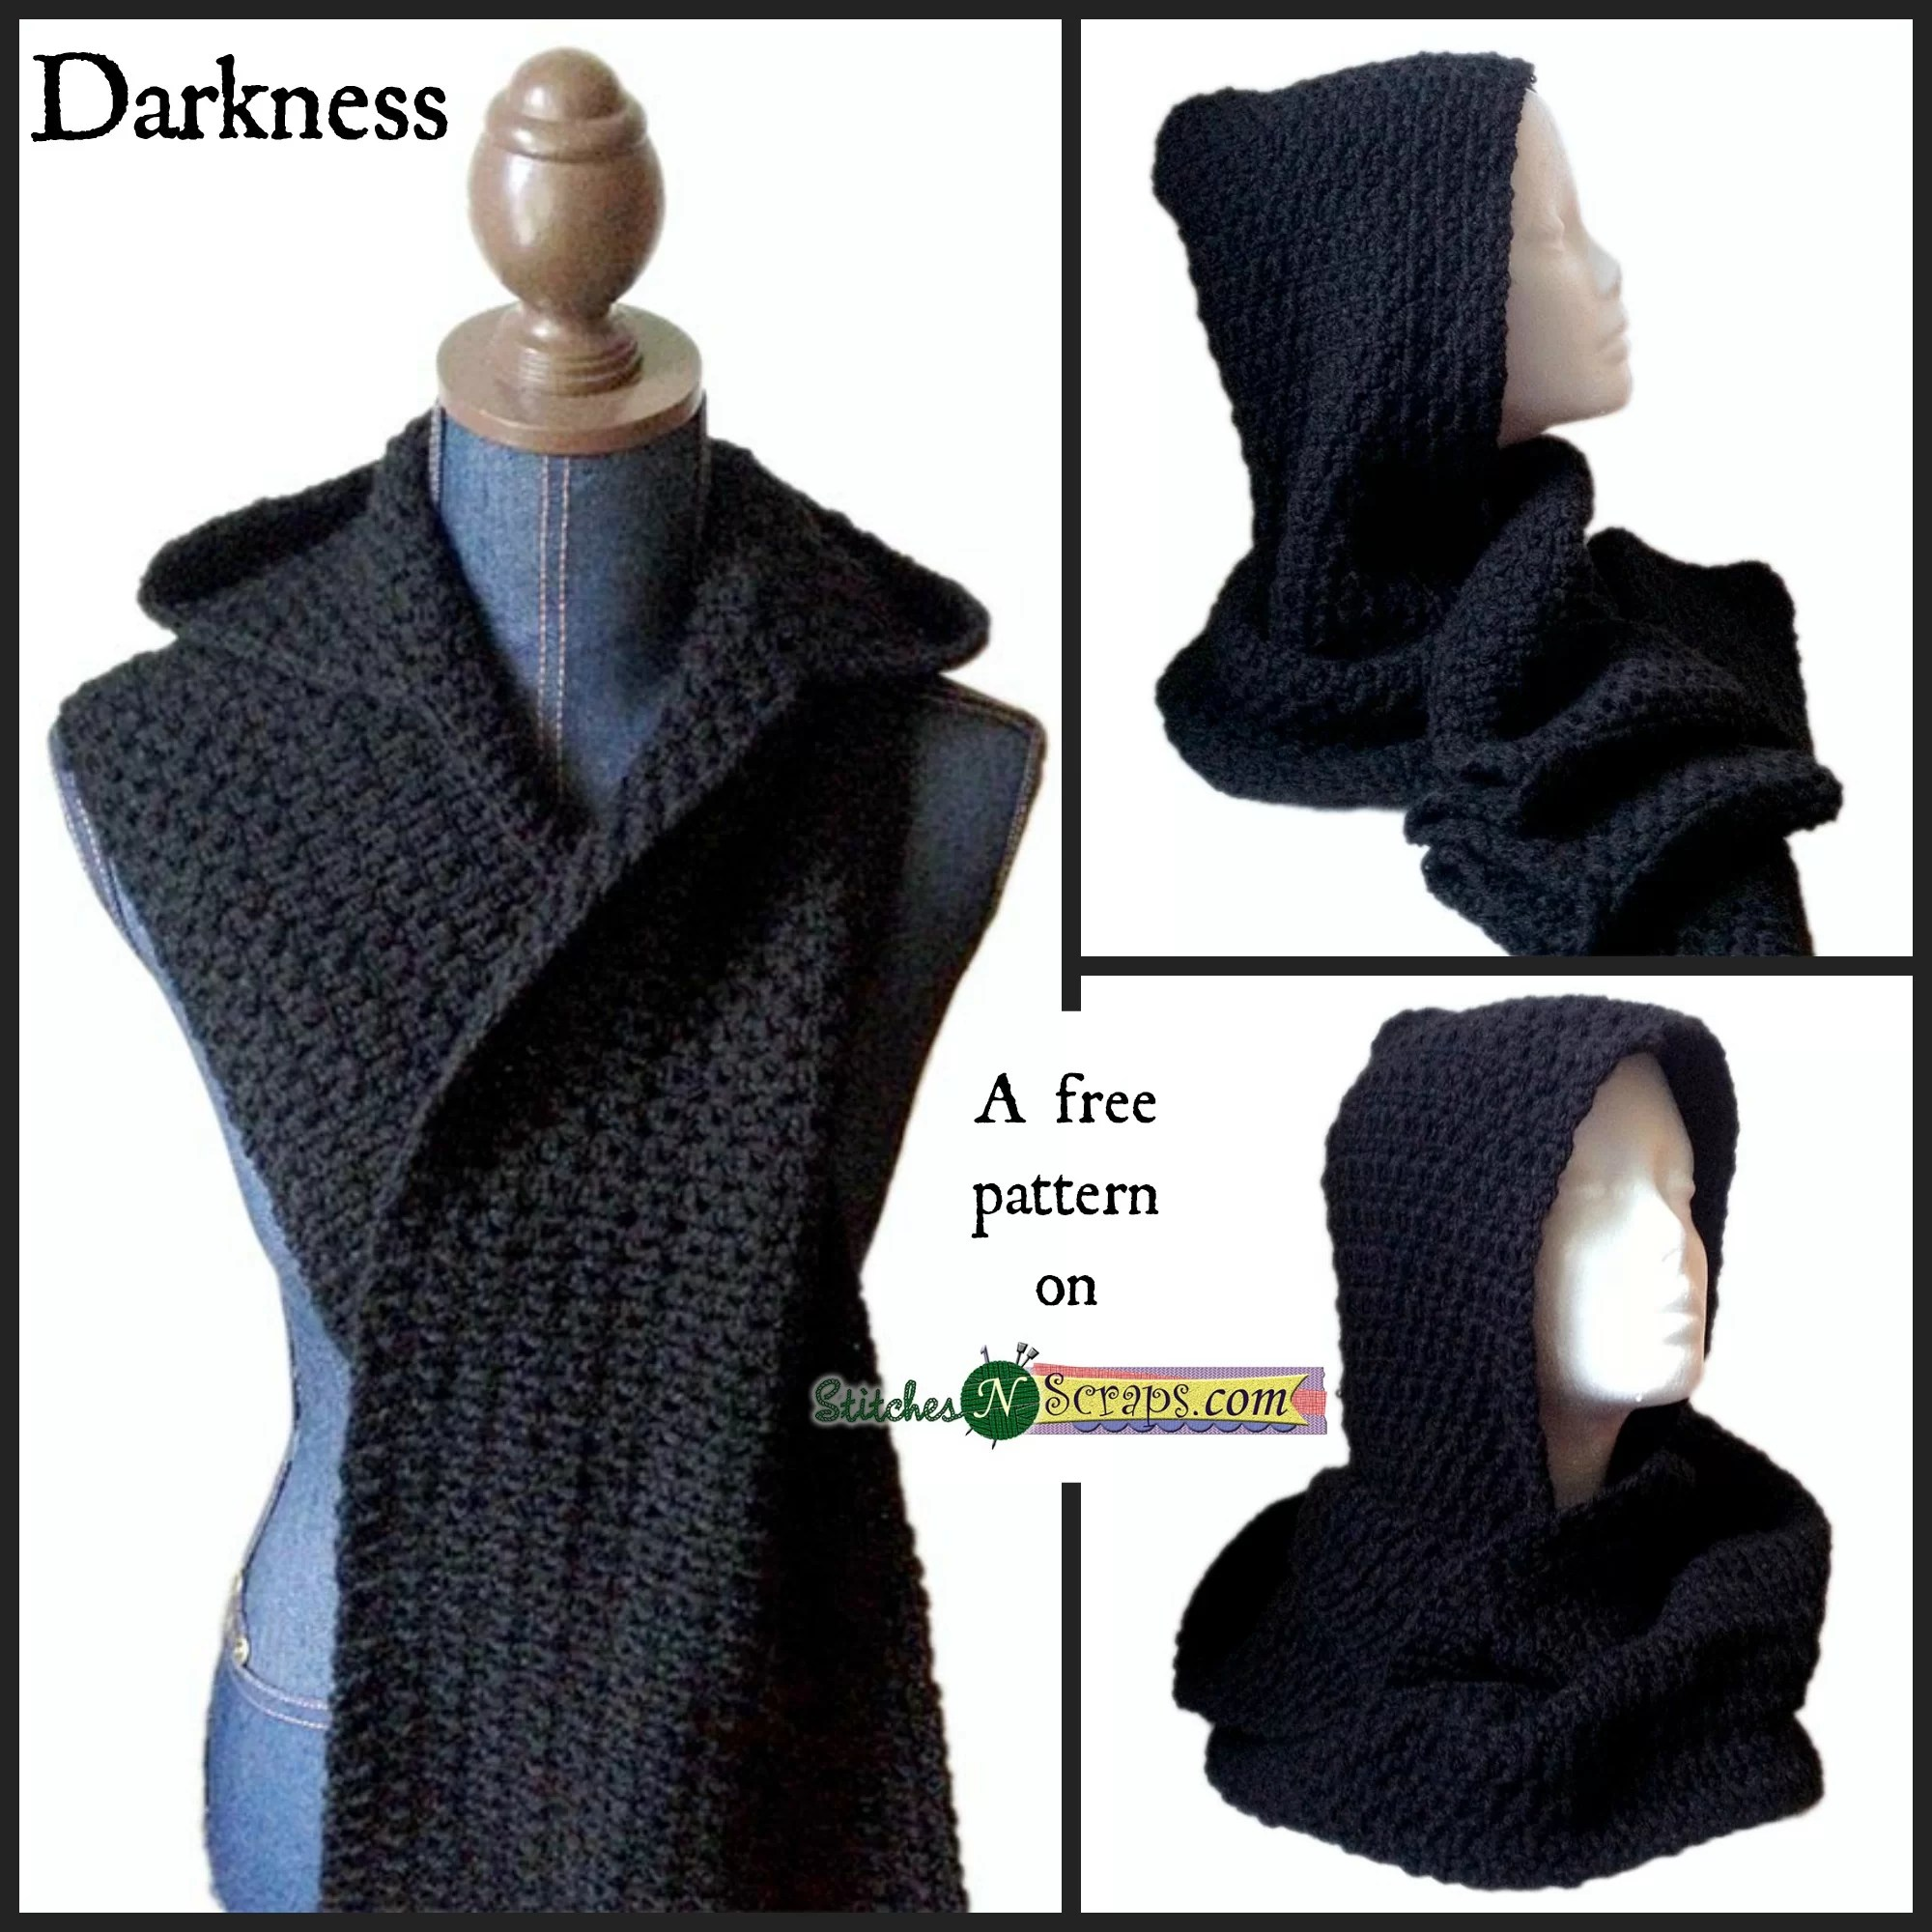 Free Pattern Darkness Stitches N Scraps